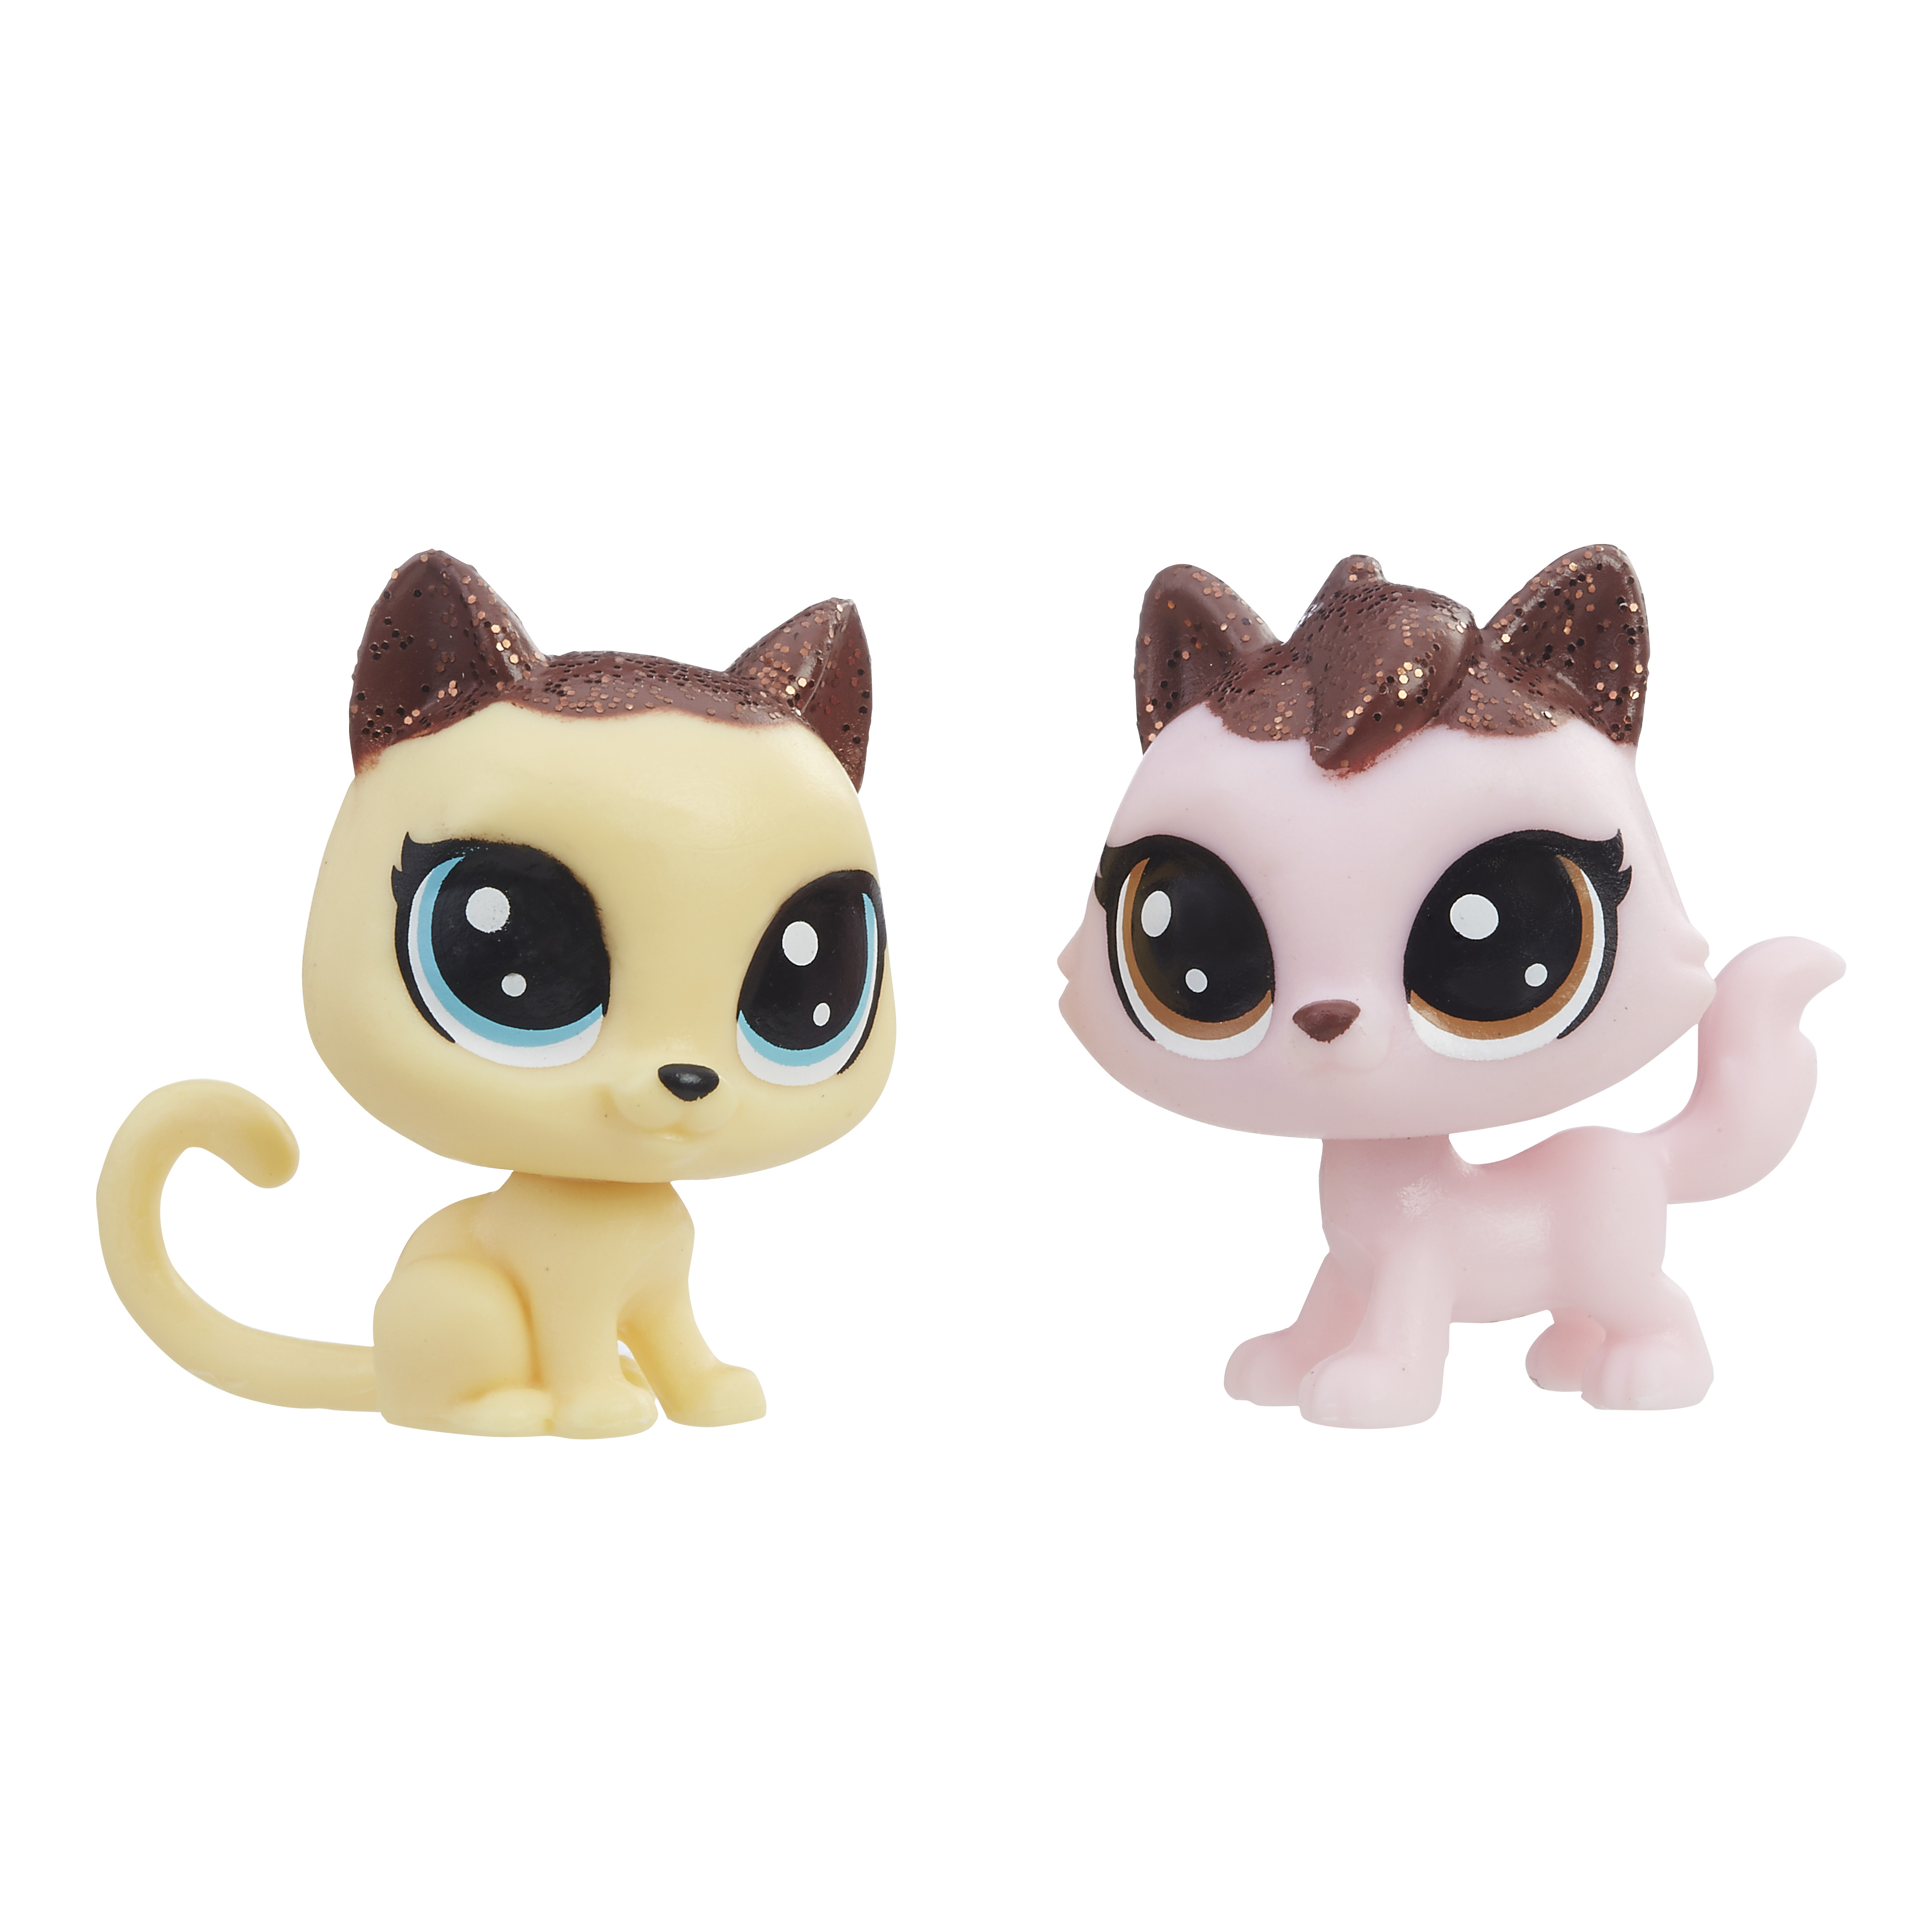 Littlest Pet Shop LITTLEST PET SHOP Набор игрушек Littlest pet shop «2 зефирных Пета» в асс. adjustable pet dog traction rope